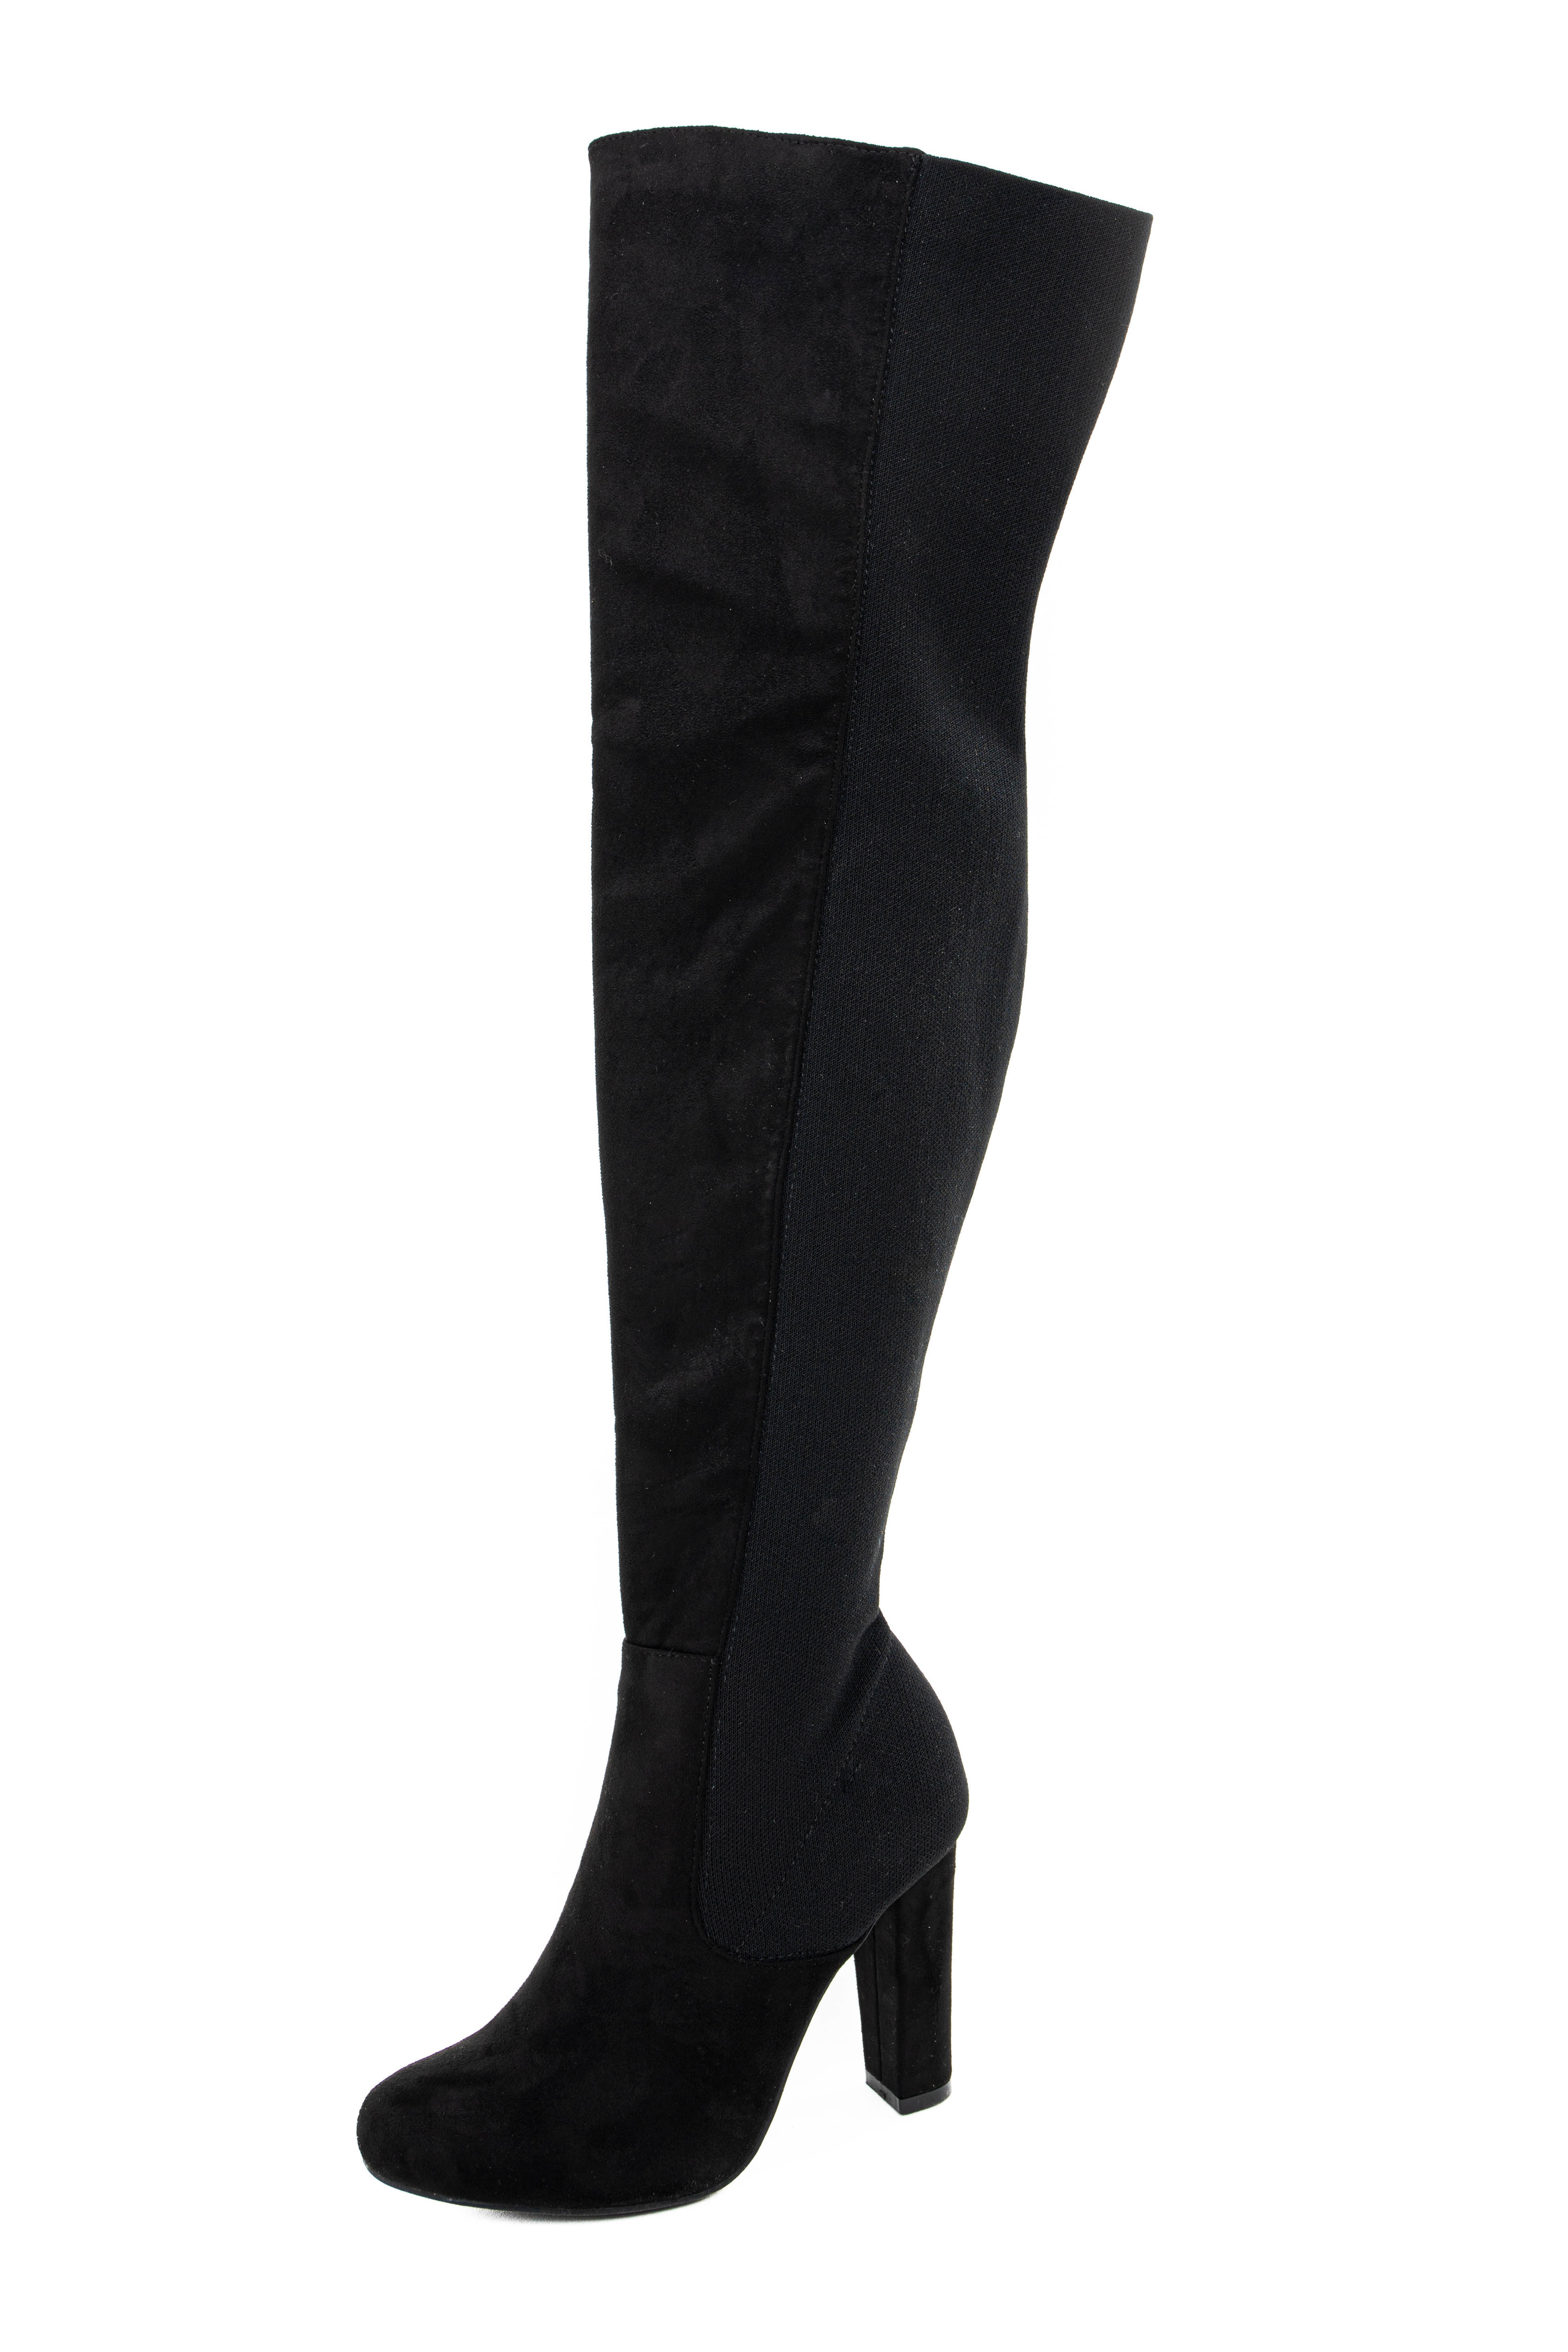 Black Faux Suede Knee High Heel Boots with Stretchy Back